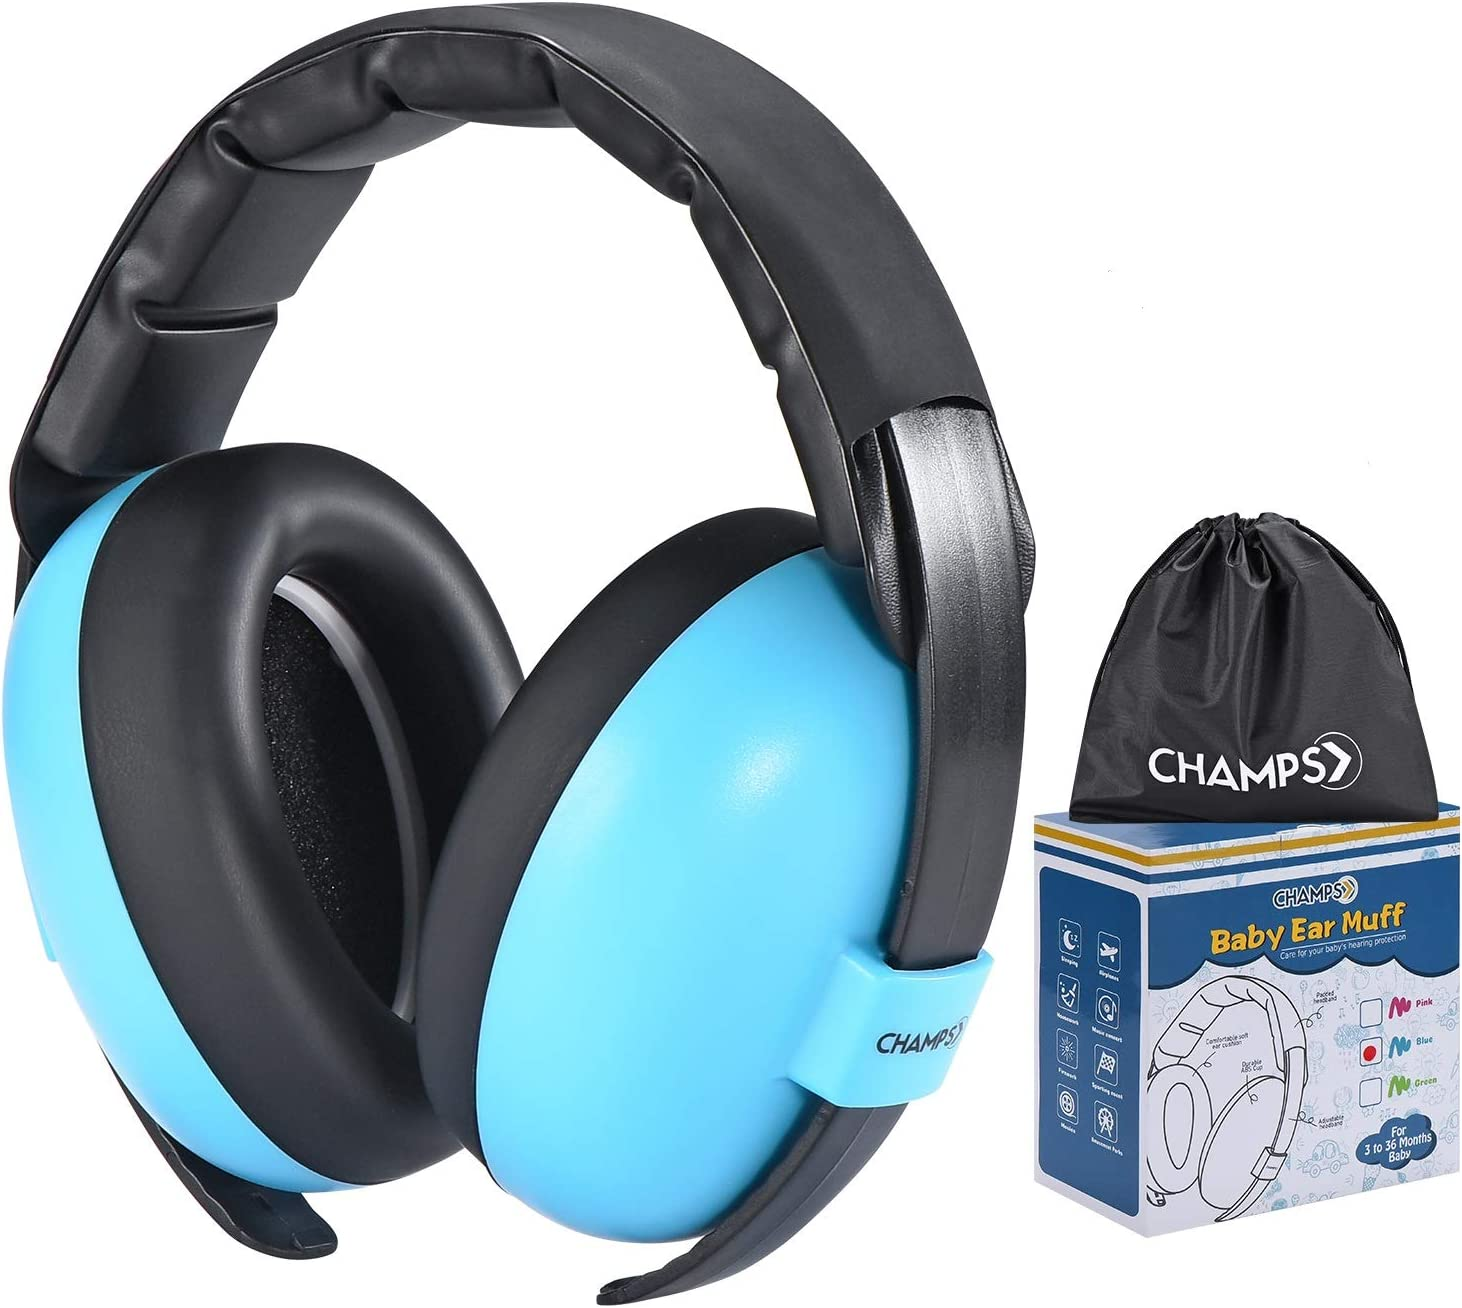 Baby Ear Muffs, Champs Baby Earmuff Noise Protection Reduction Headphones for 0-3 Years Babies, Toddler, Infant, Safety Hearing Ear Muff Shooting Range Hunting Season [Blue]